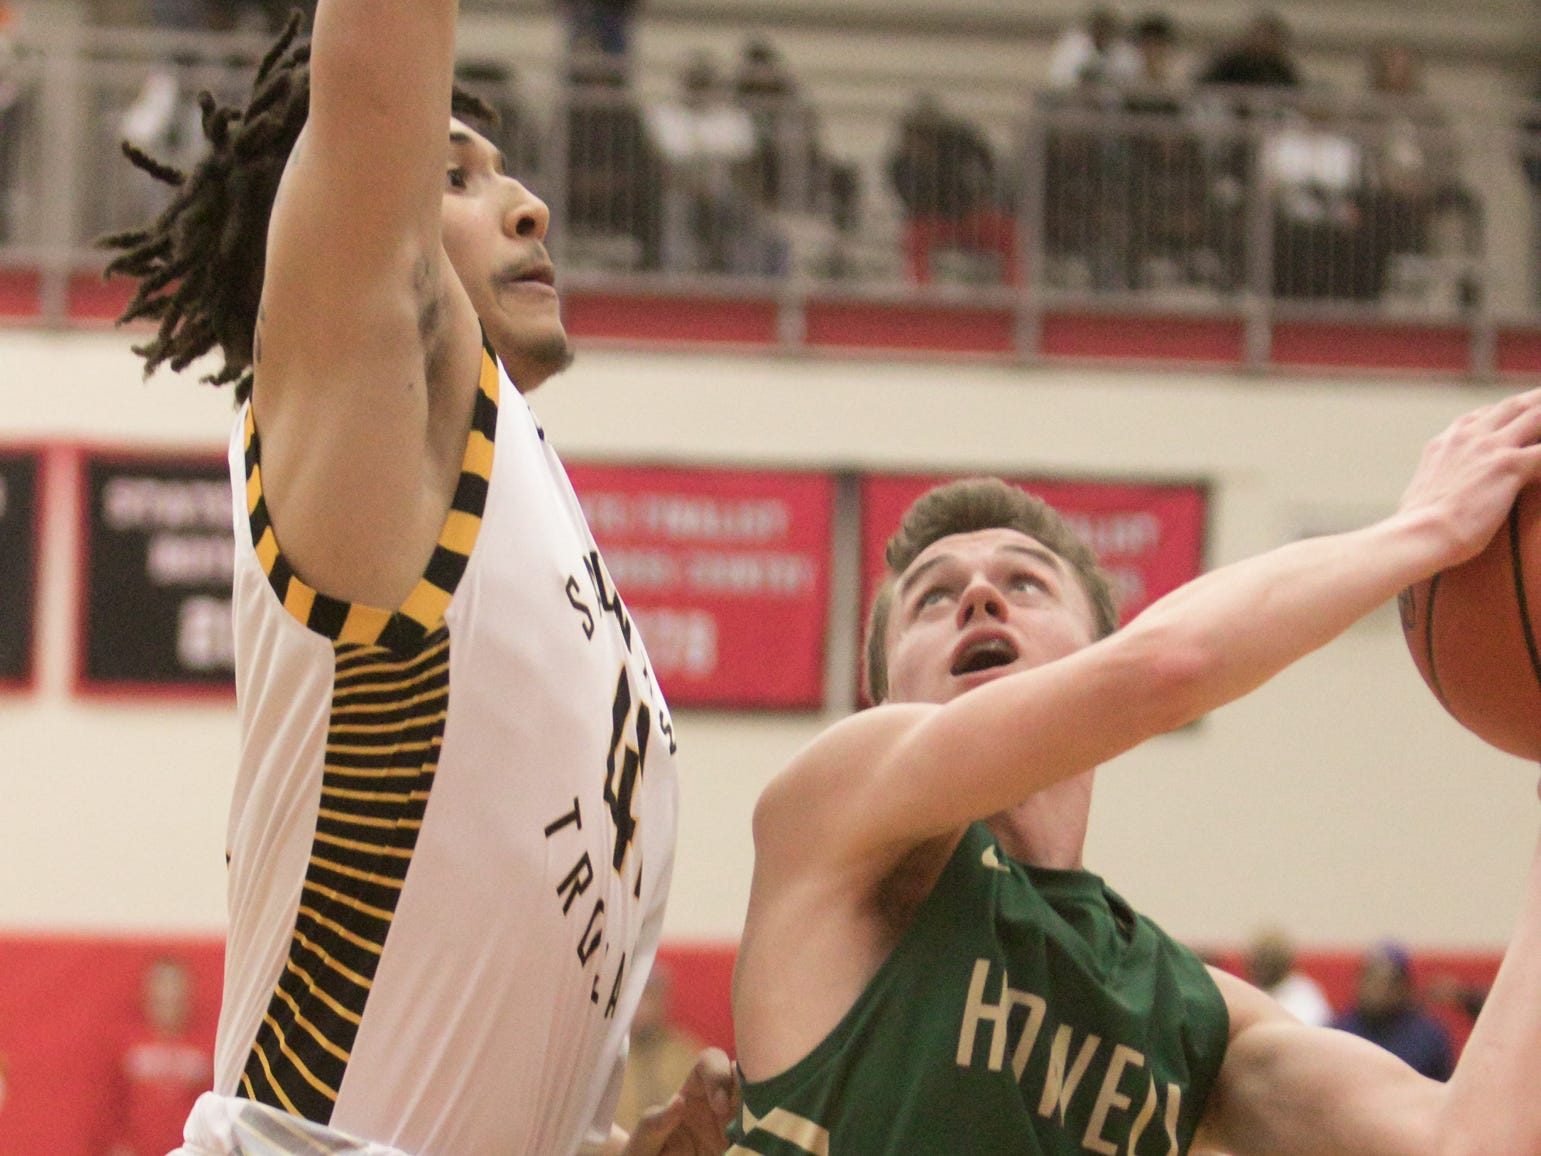 Howell's Kip French goes for a layup, guarded by Saginaw's Koby Barnett Tuesday, March 12, 2019.